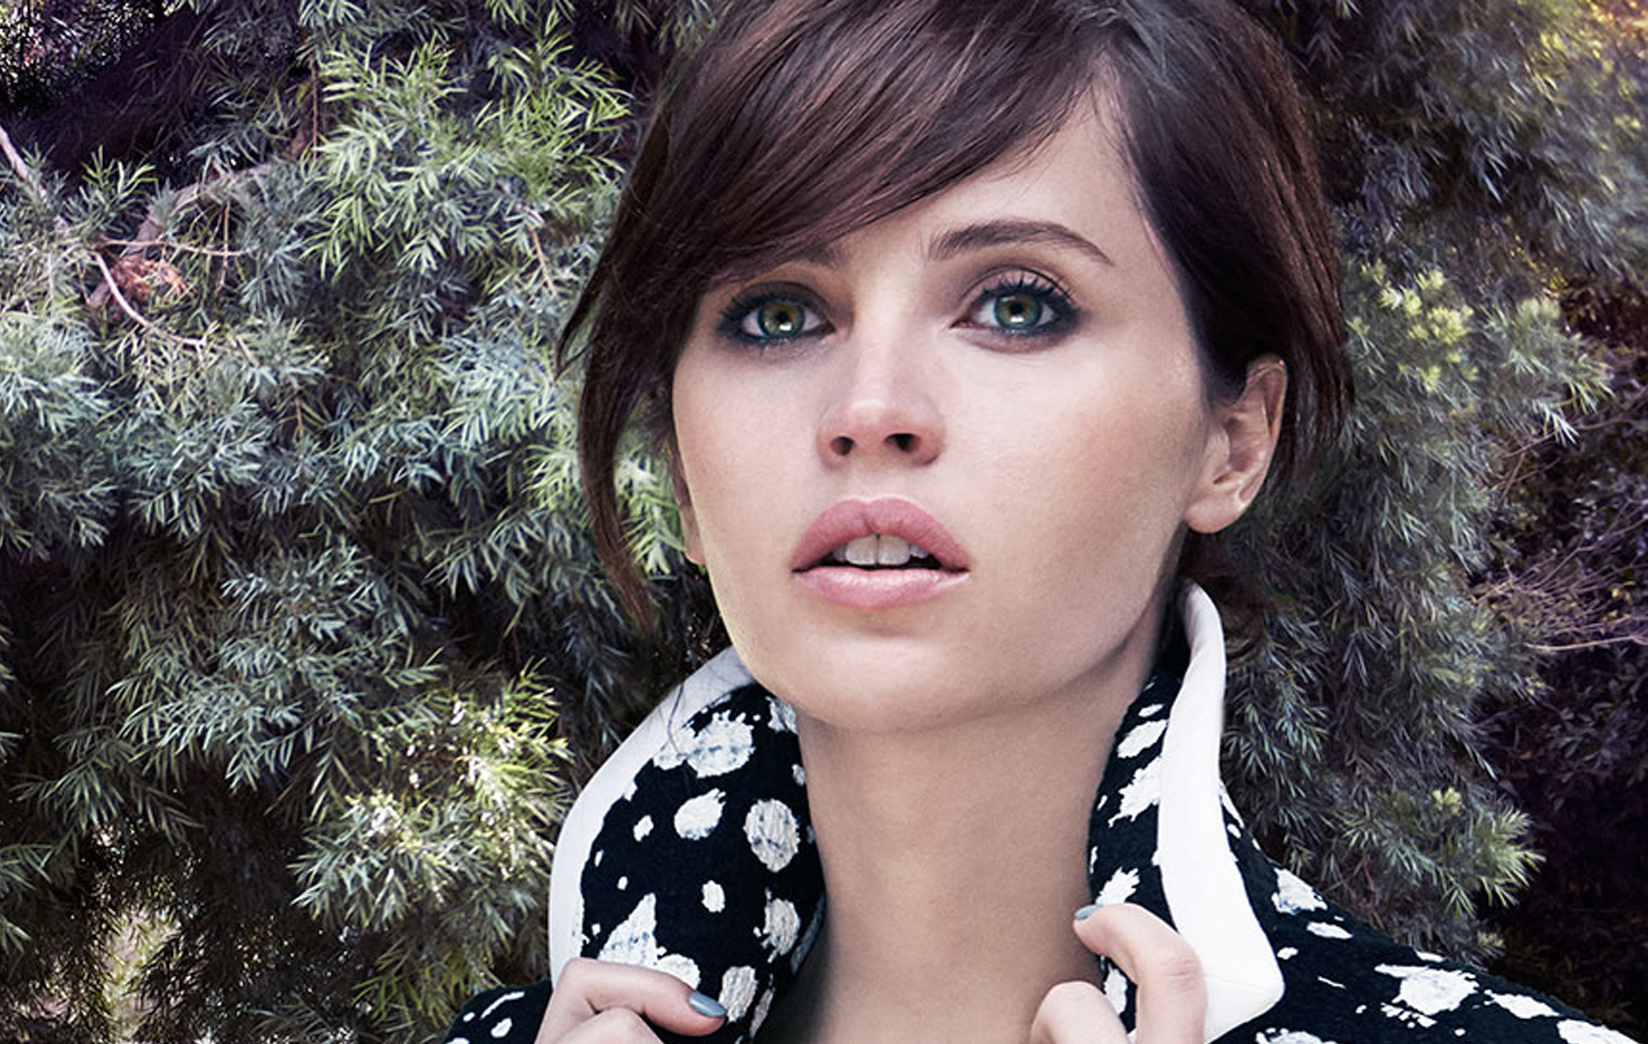 felicity jones hollywood actress hd wallpapers pictures 2018 | hd walls